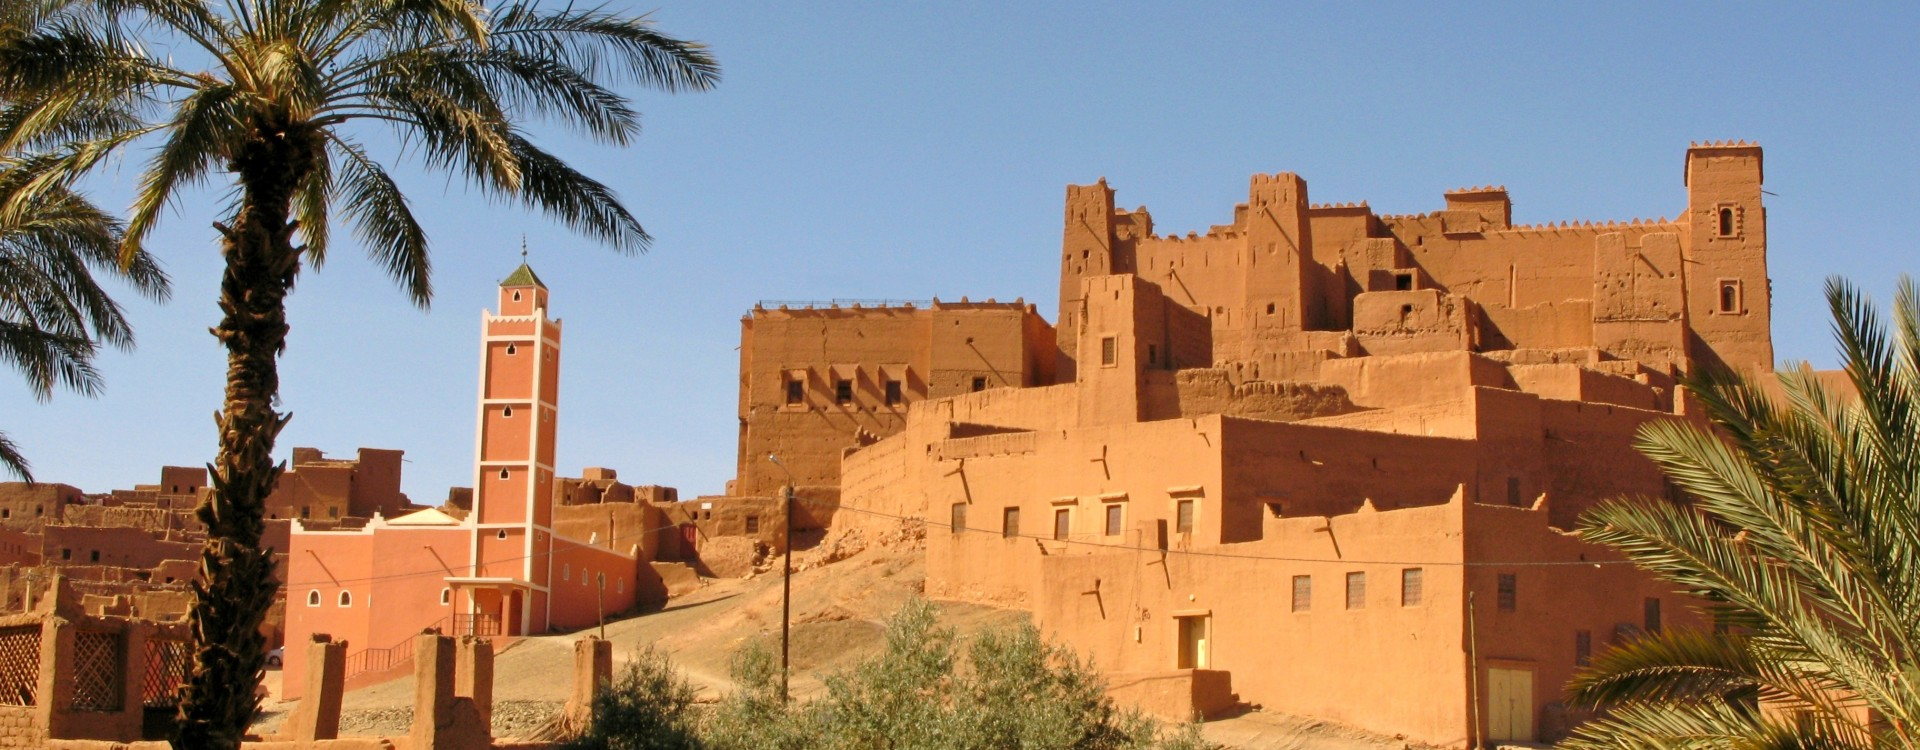 One of the impressive kasbahs in the Draa Valley